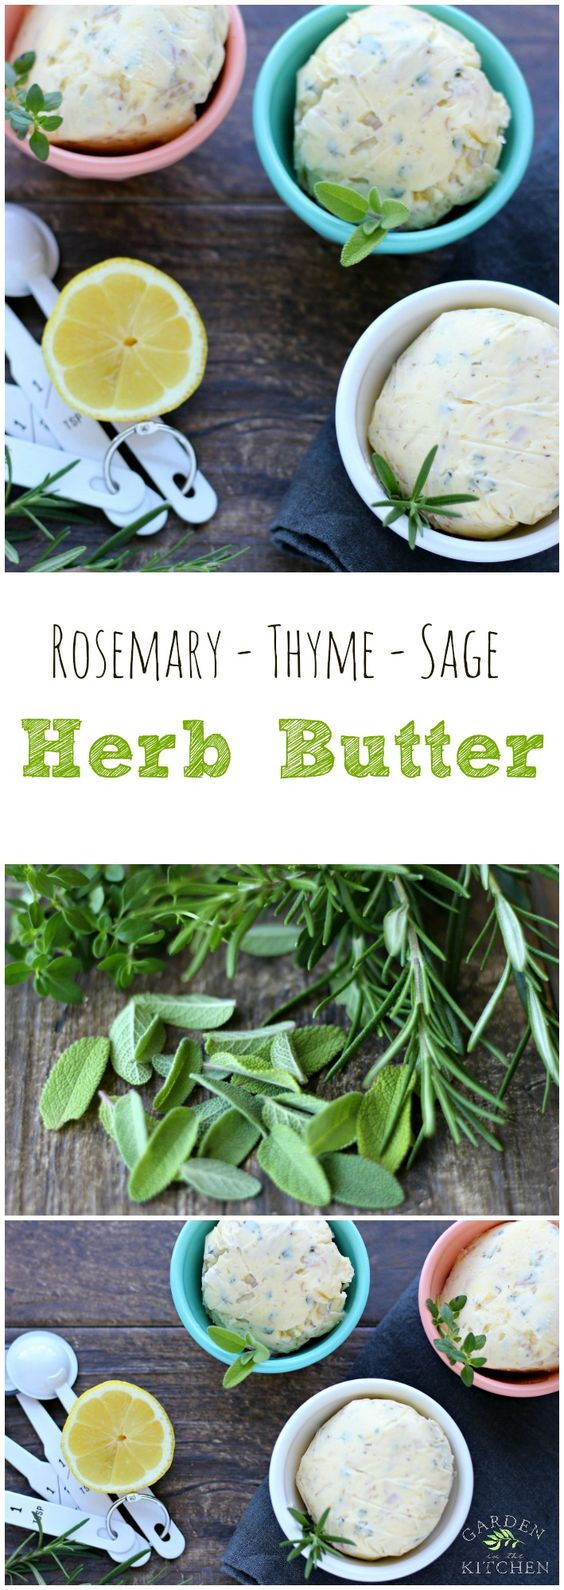 This Herb Butter is a convenient way to quickly add flavor to your cooking | gardeninthekitchen.com